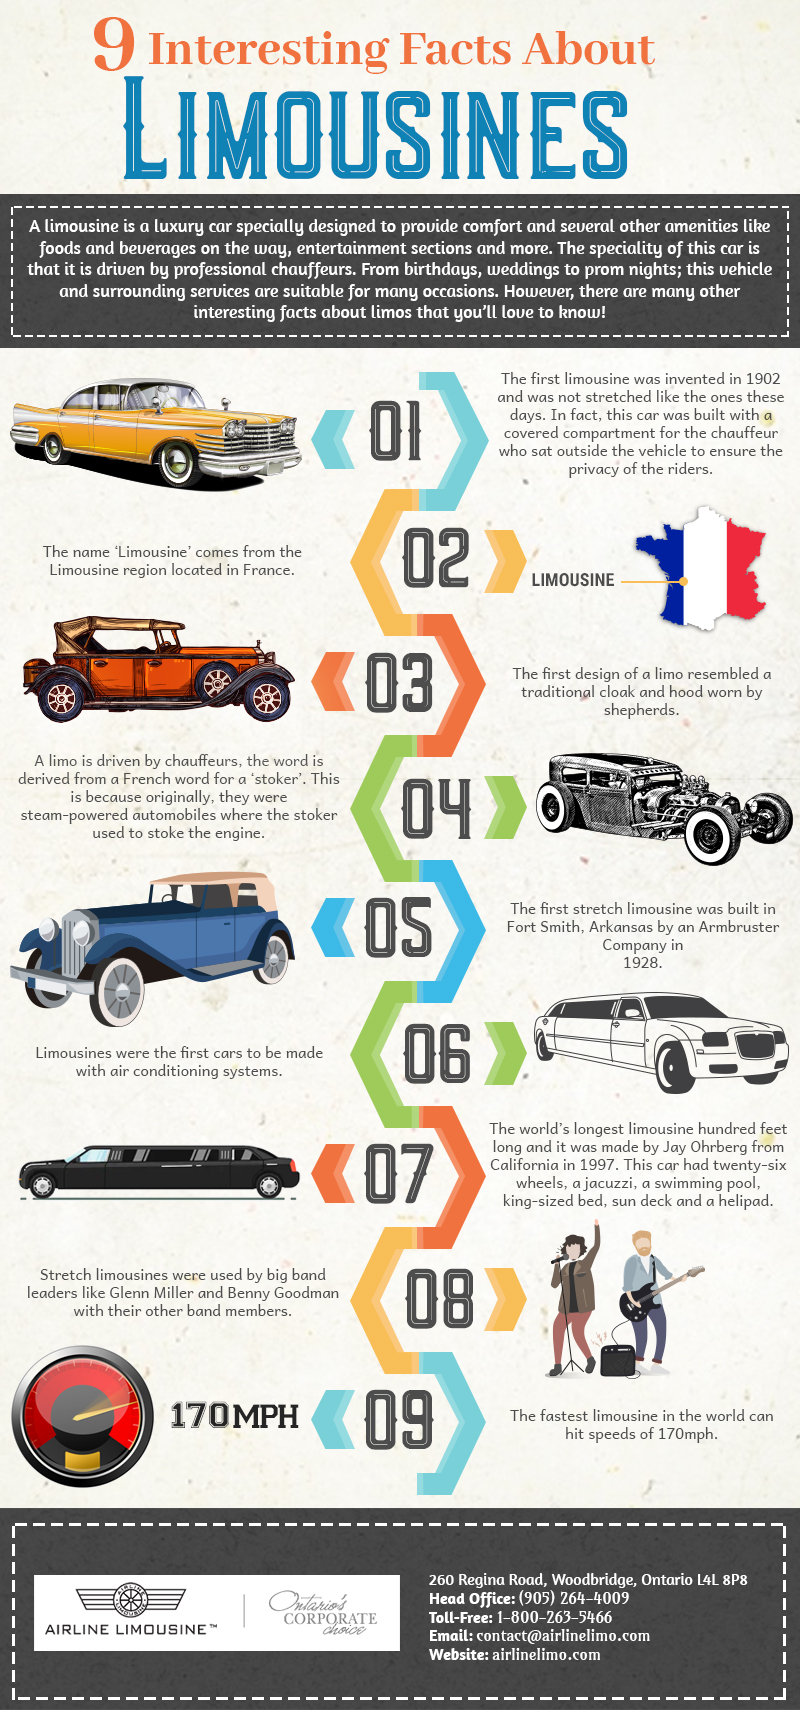 A List of Interesting Facts About Limousines